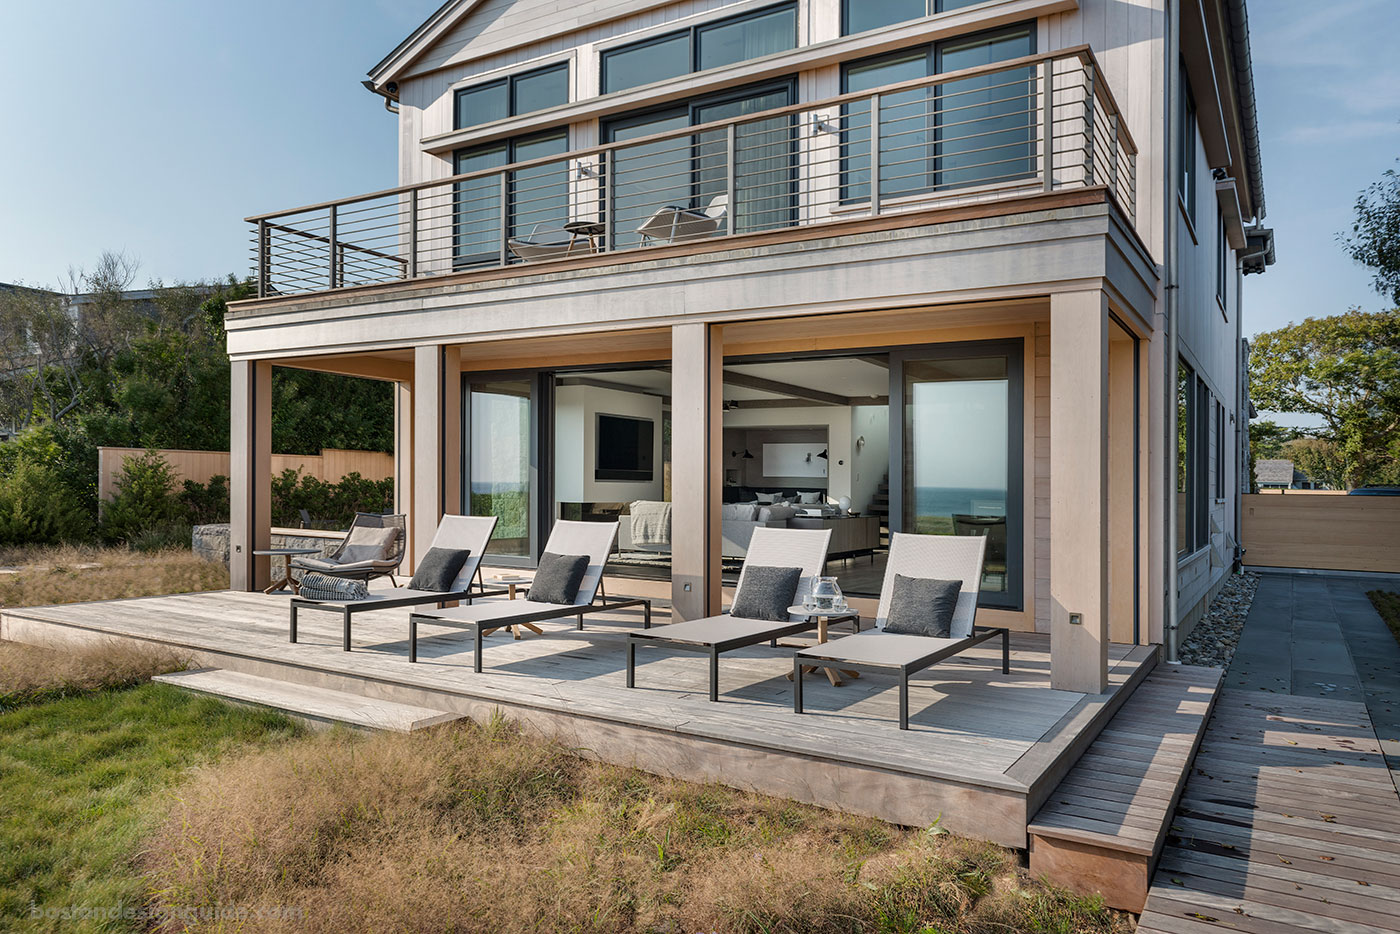 Organic beachside Cape Cod home with a California flair